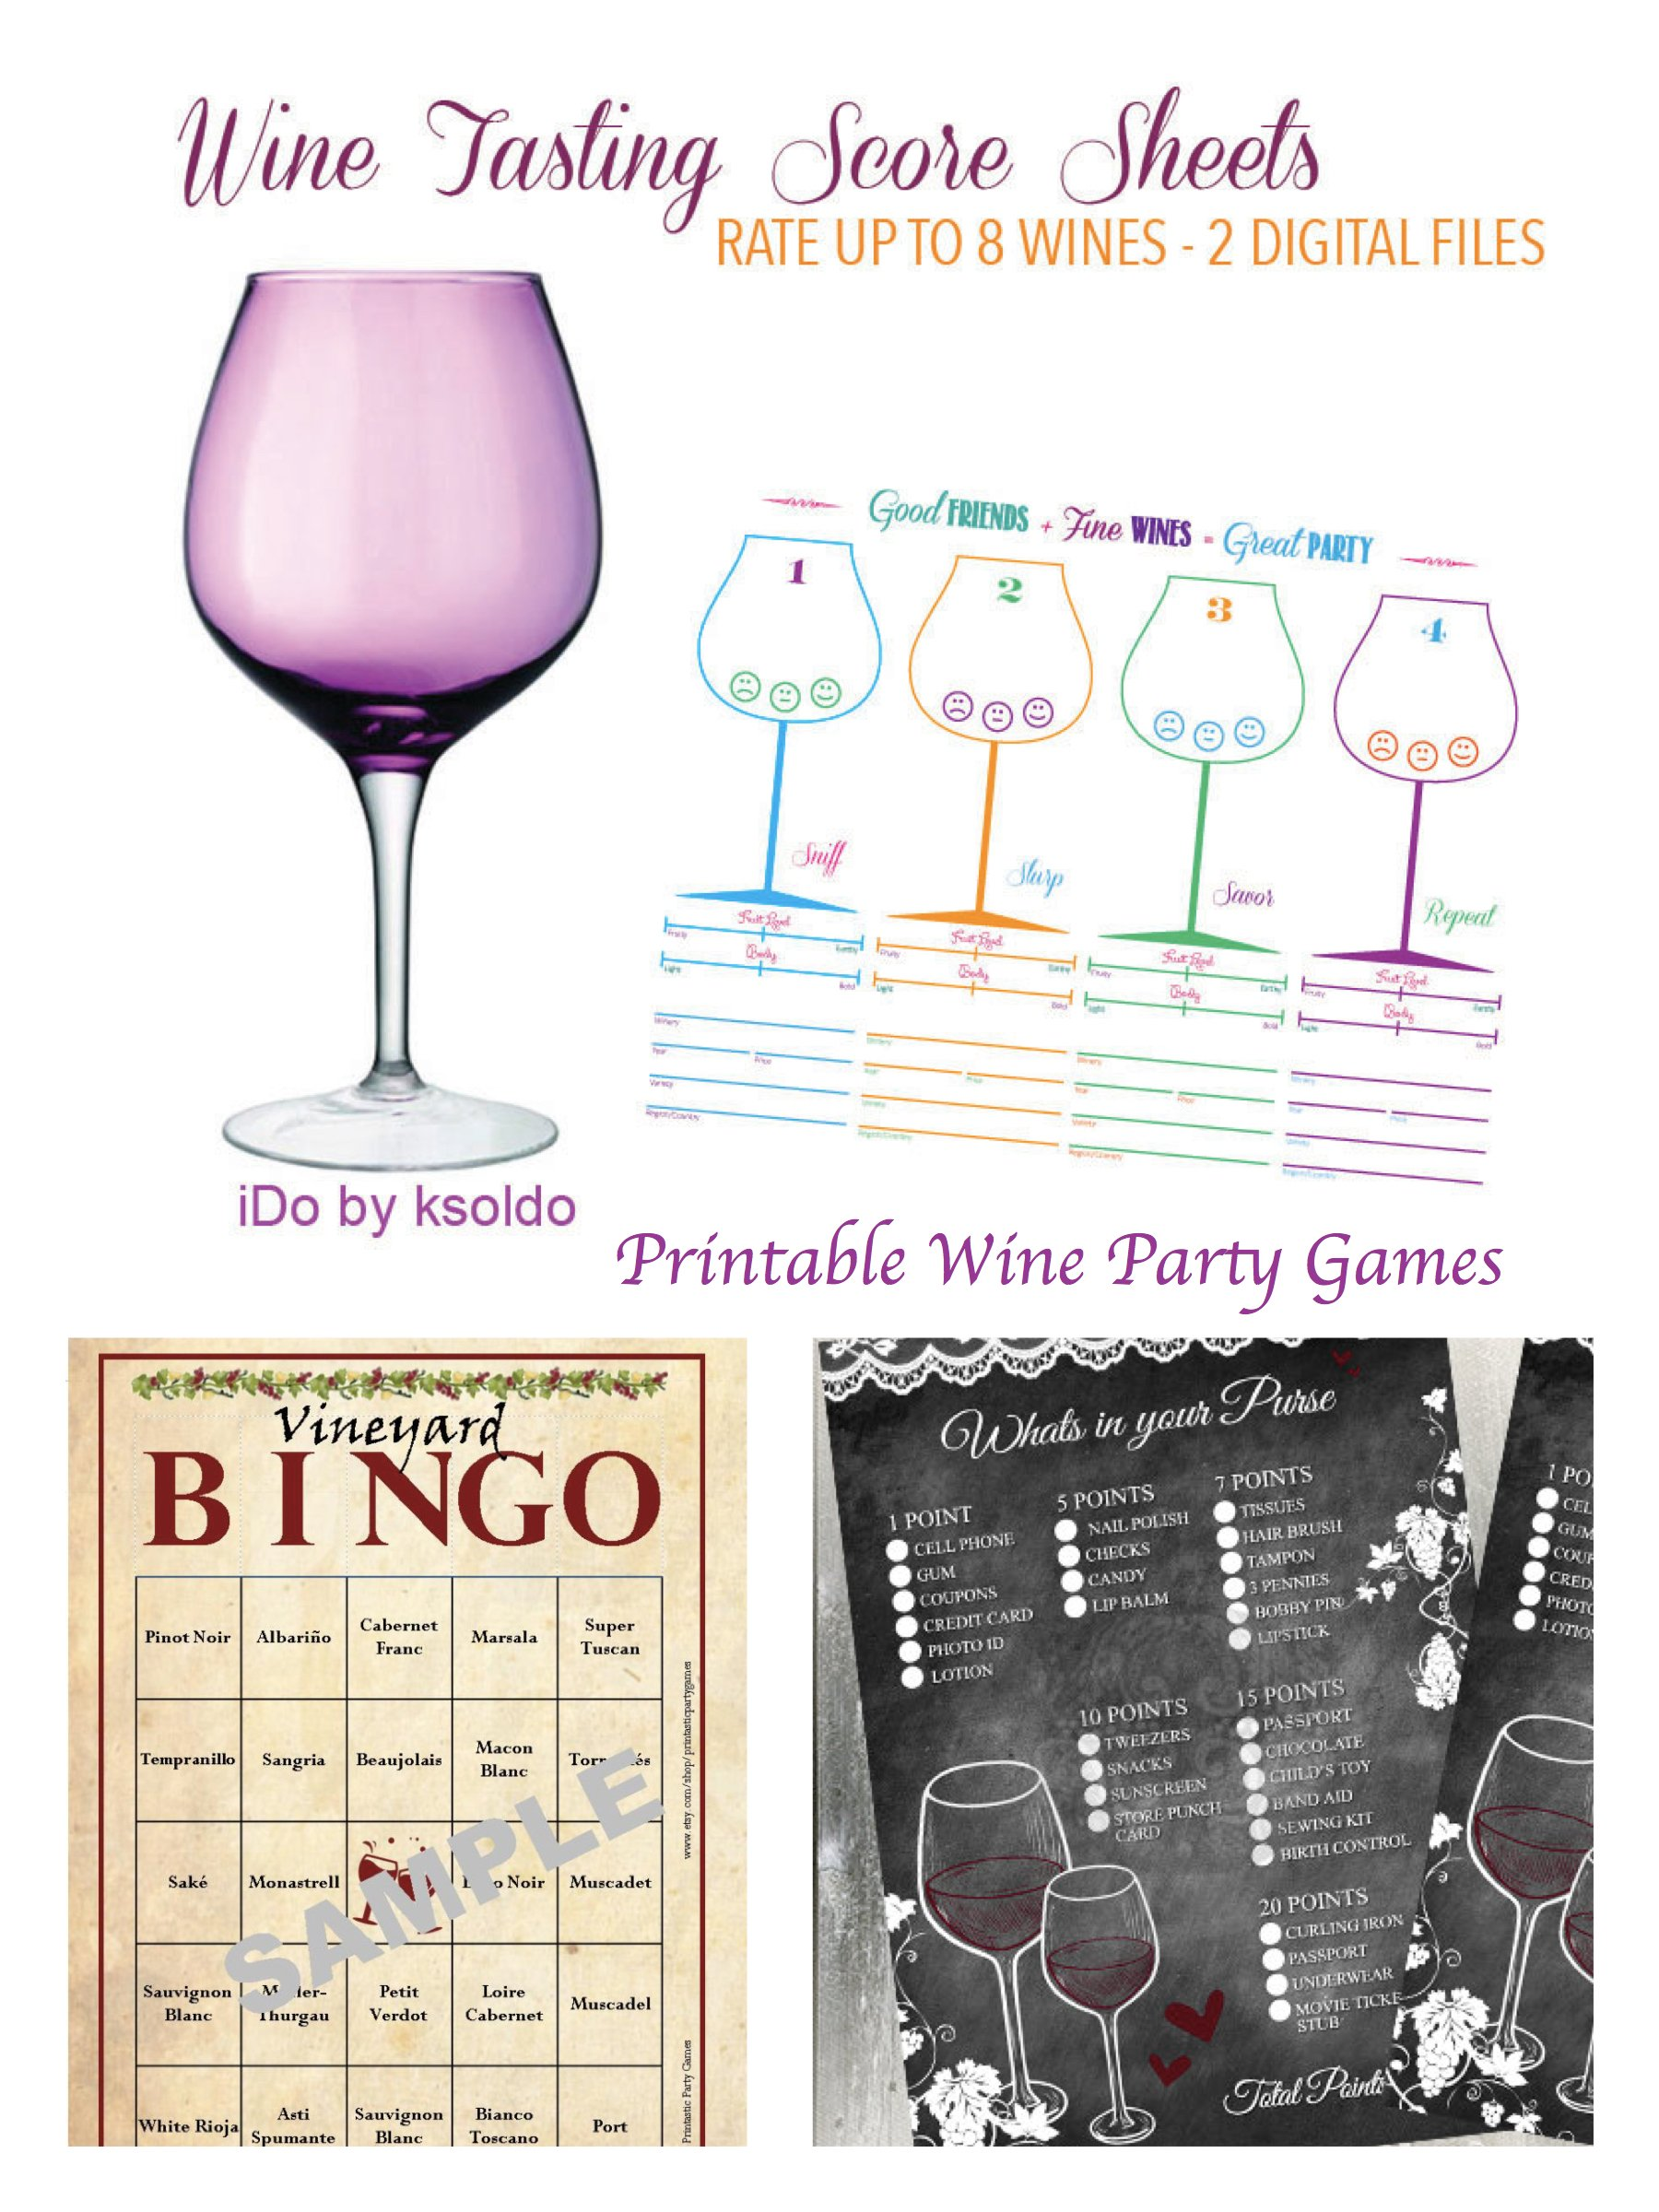 photo about Wine Tasting Games Printable identify Least complicated Basic Still Wine Social gathering Creating, Designs Resources